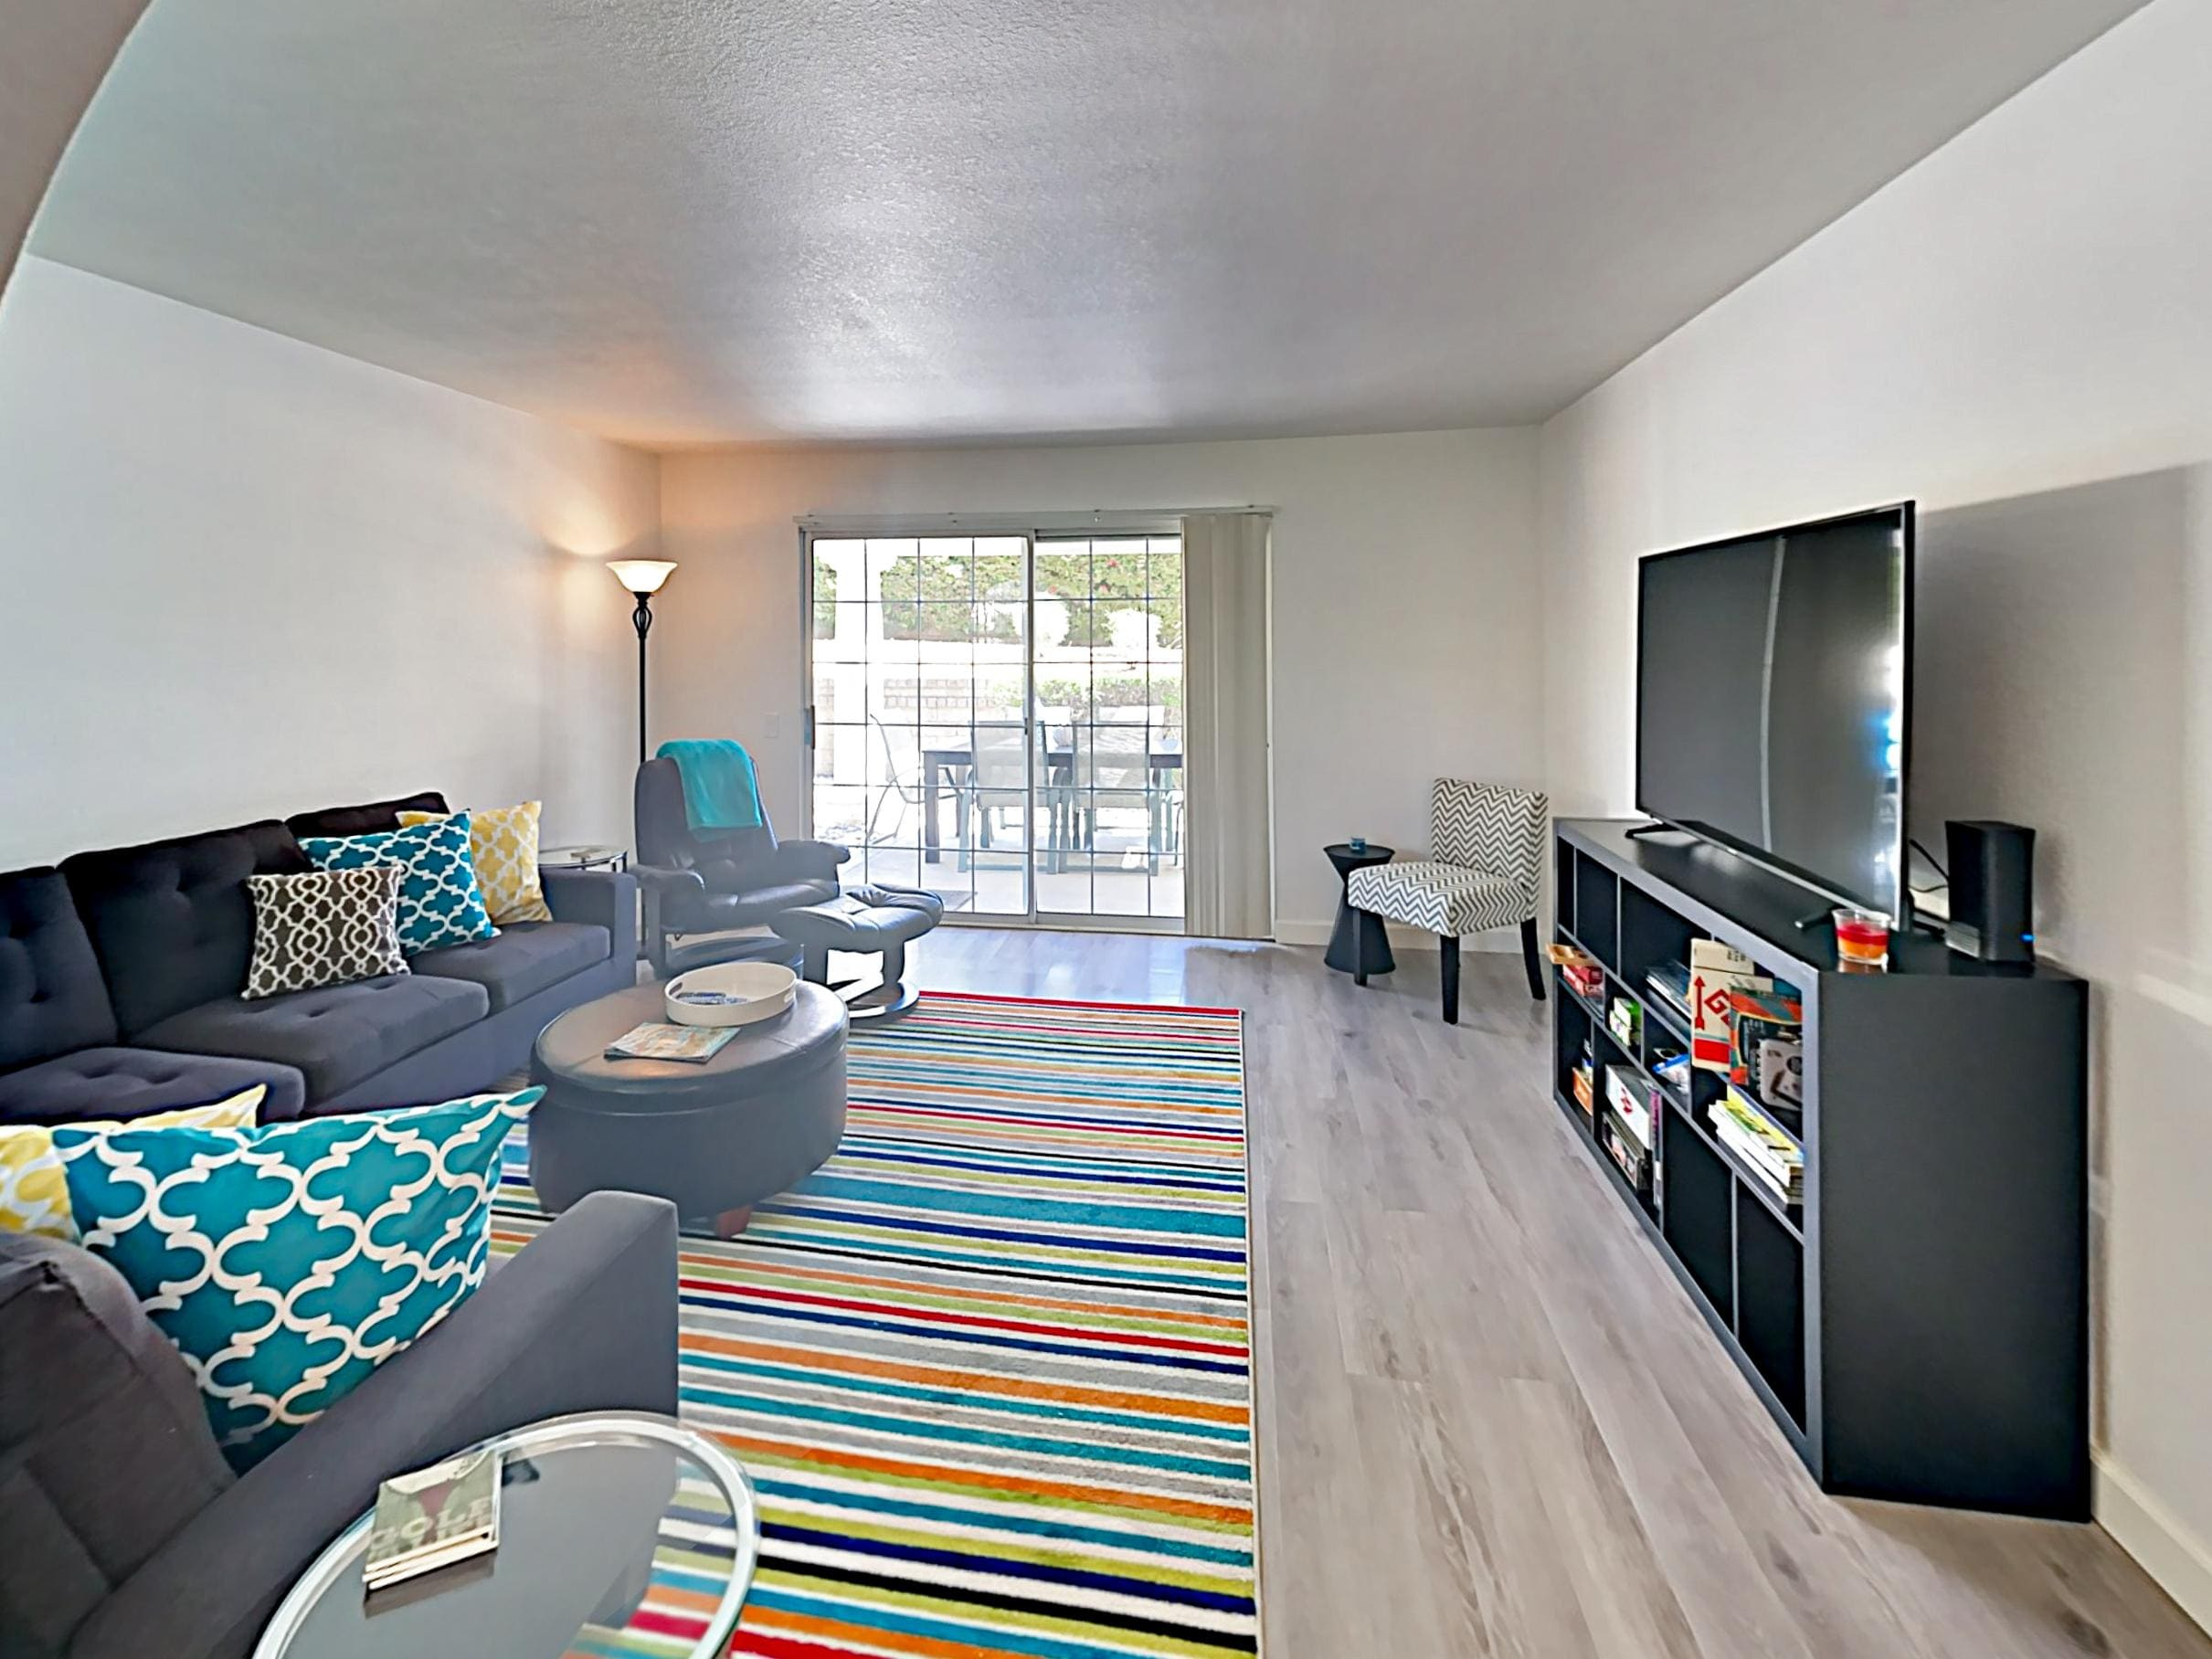 Property Image 1 - Remodeled Mesquite Country Club Condo with Sunny Patio